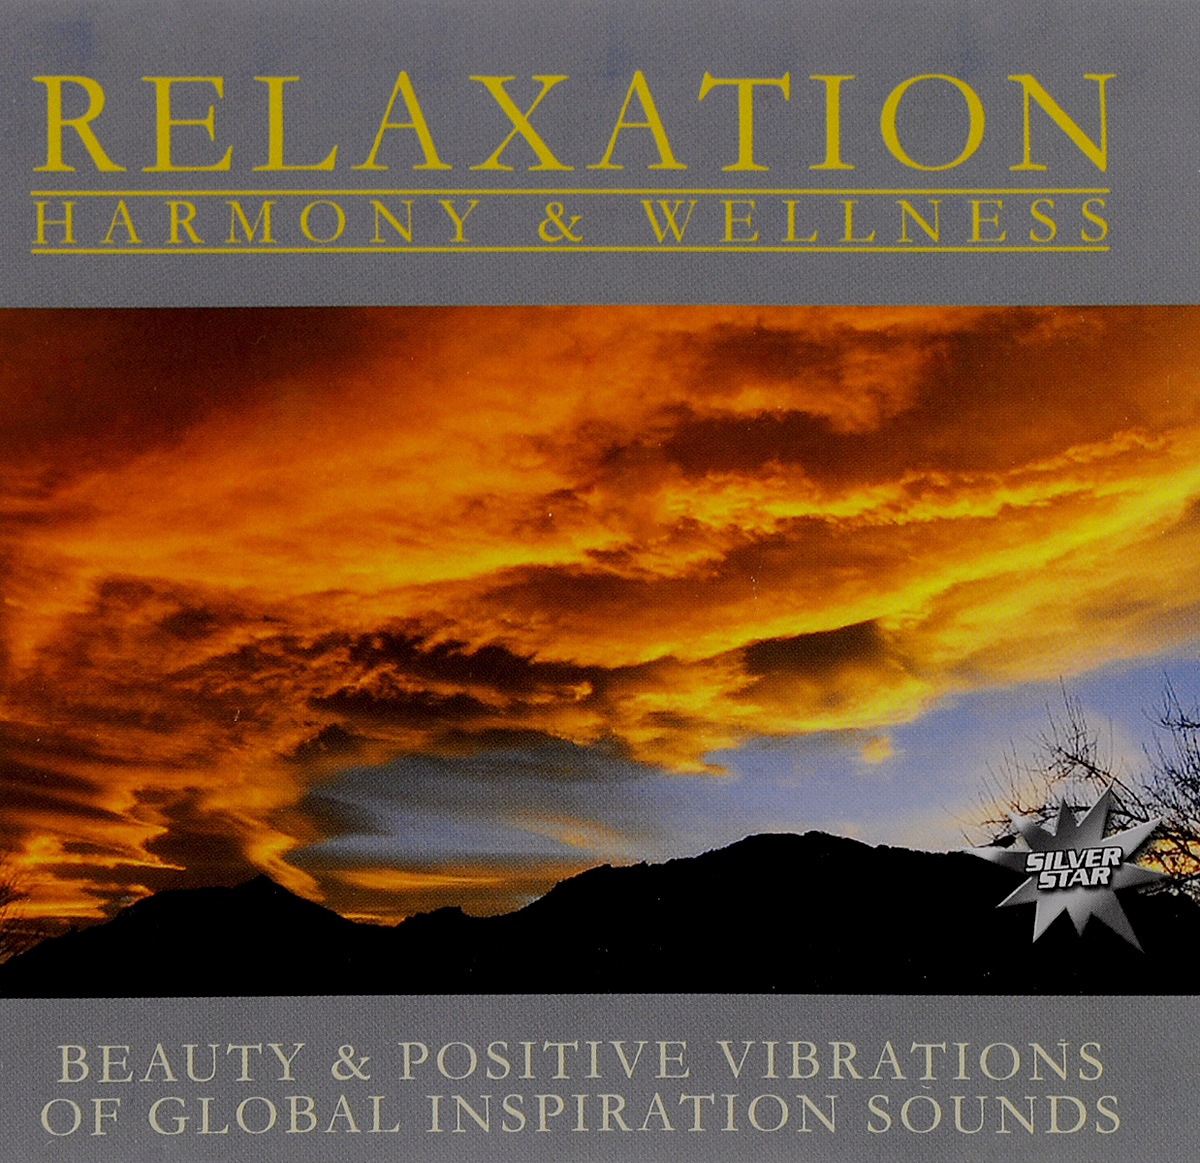 Beauty & Positive Vibrations Of Global Inspiration Sounds